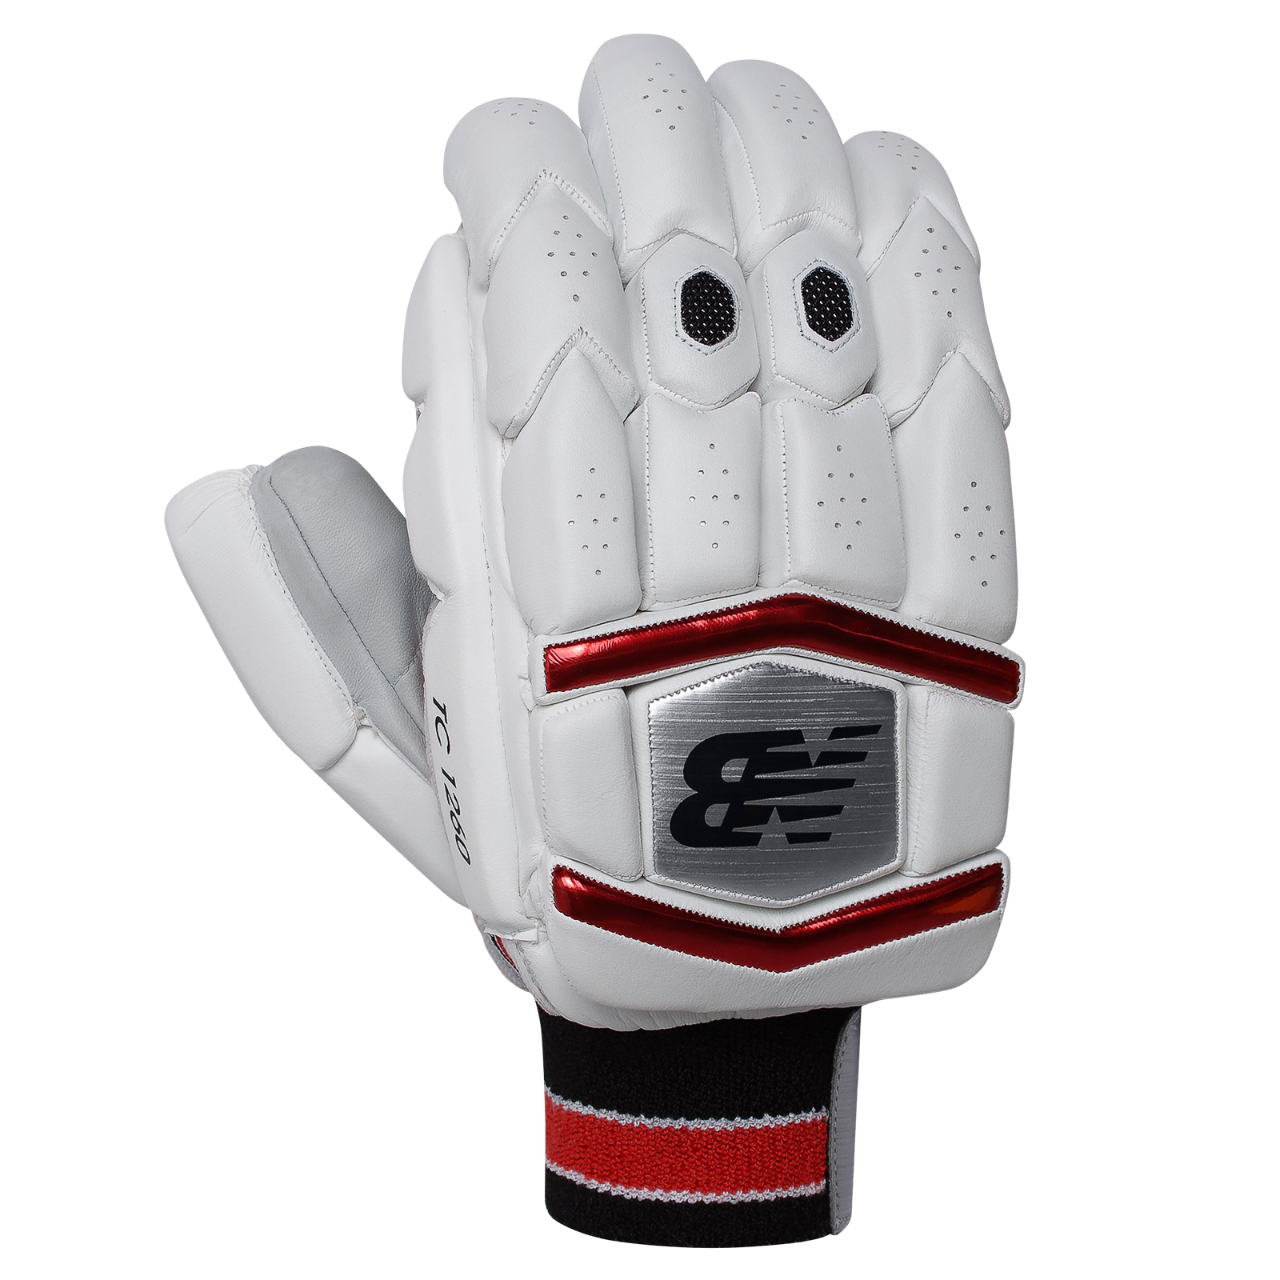 2021 New Balance TC 1260 Batting Gloves